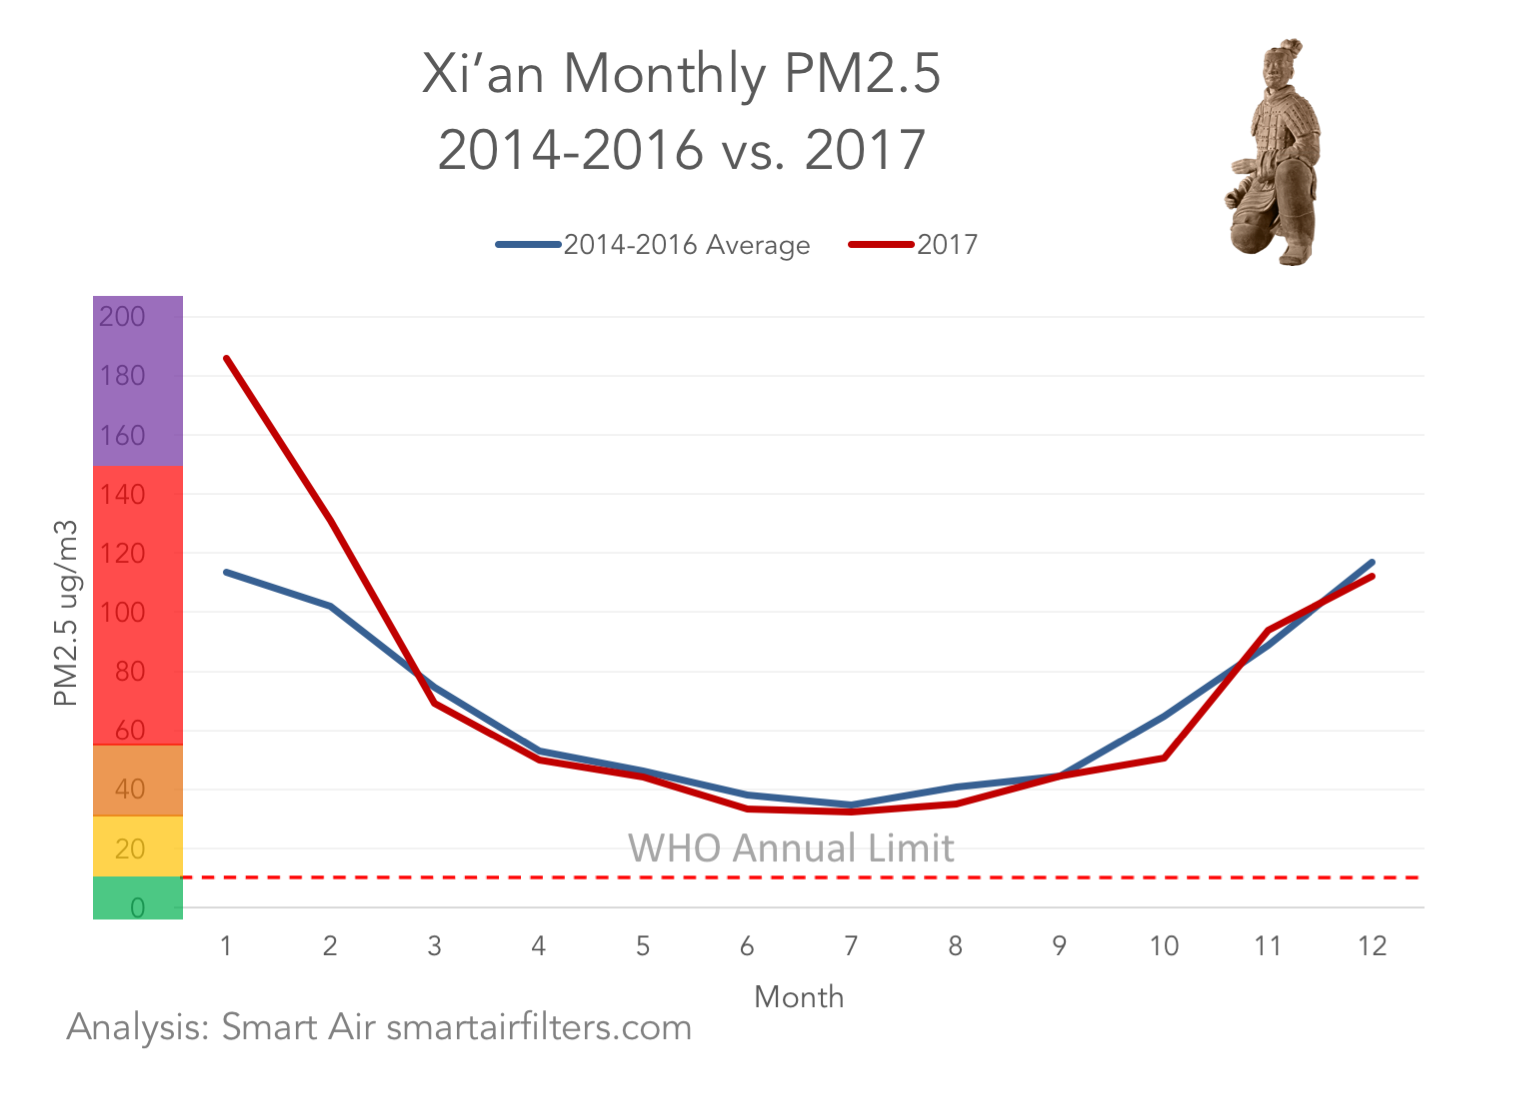 Xi'an monthly air quality air pollution PM2.5